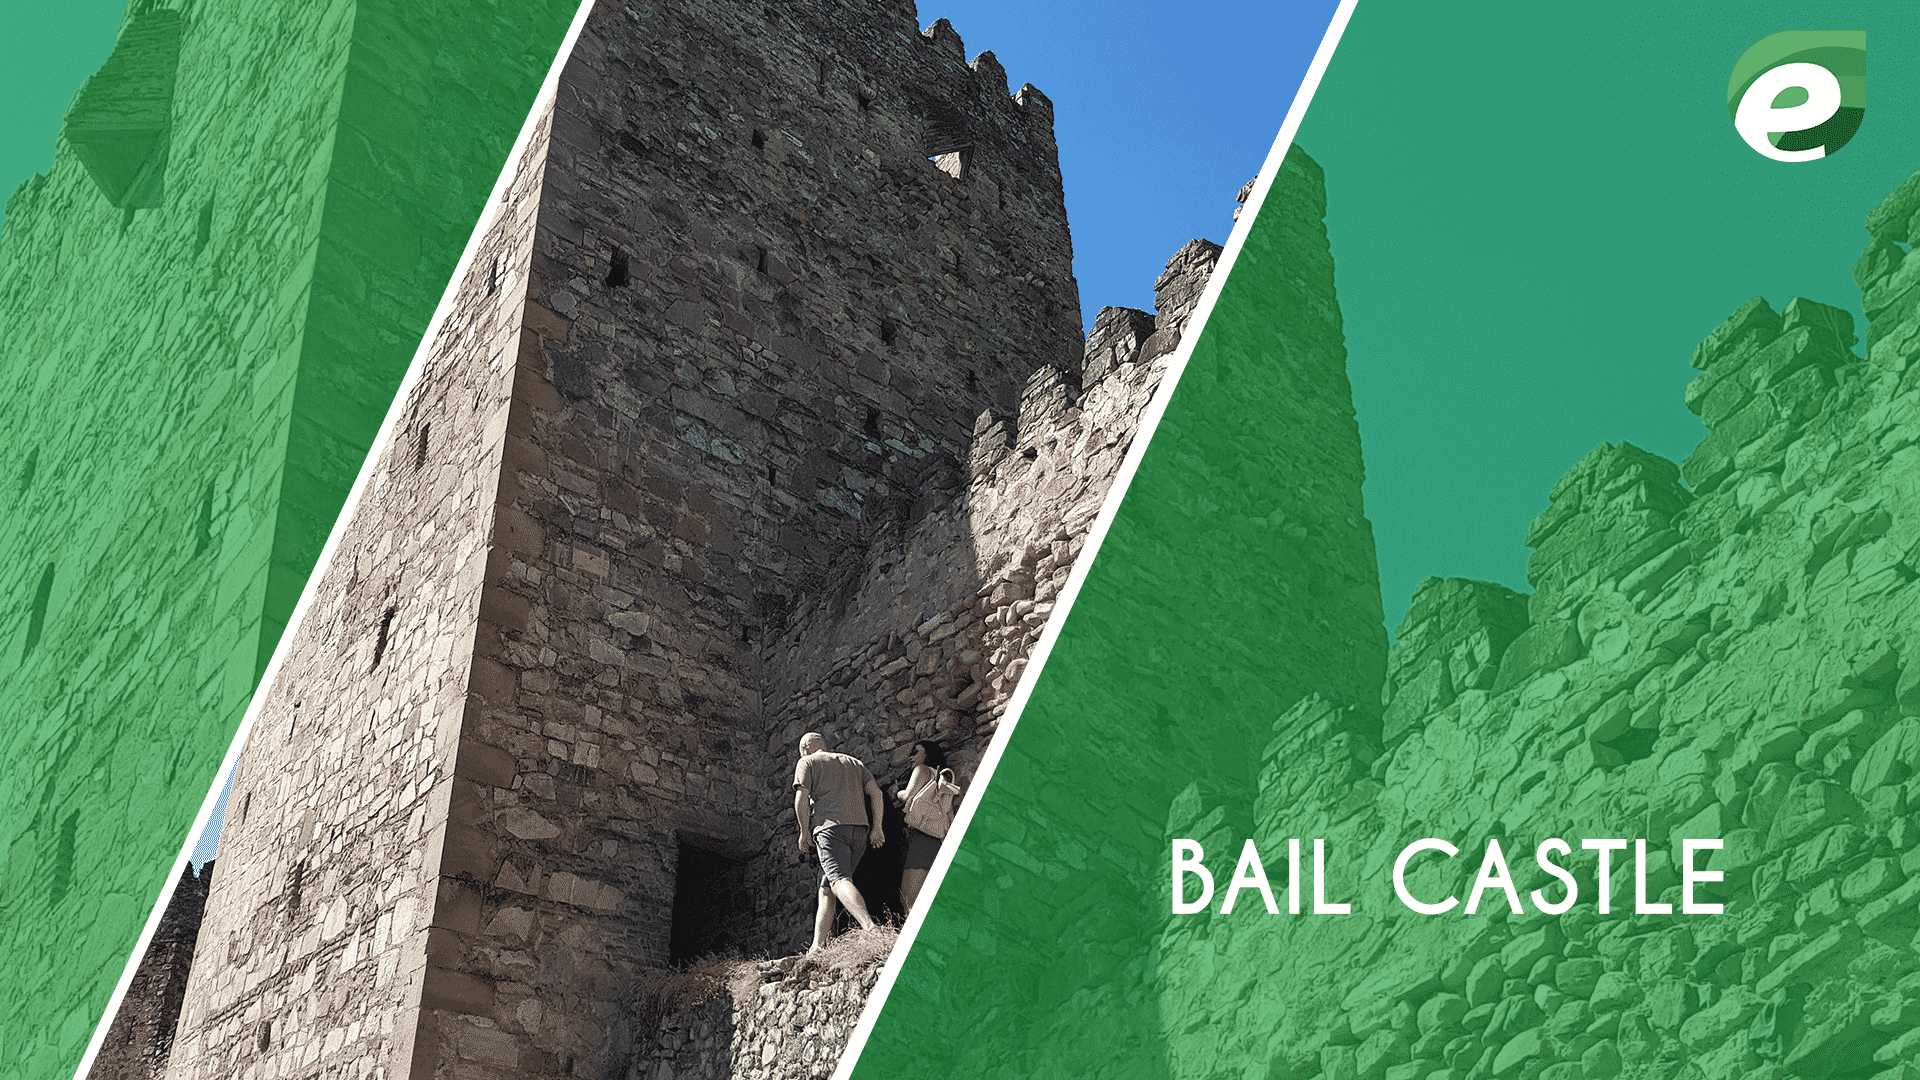 Baku- Capital of Azerbaijan- Bail Castle